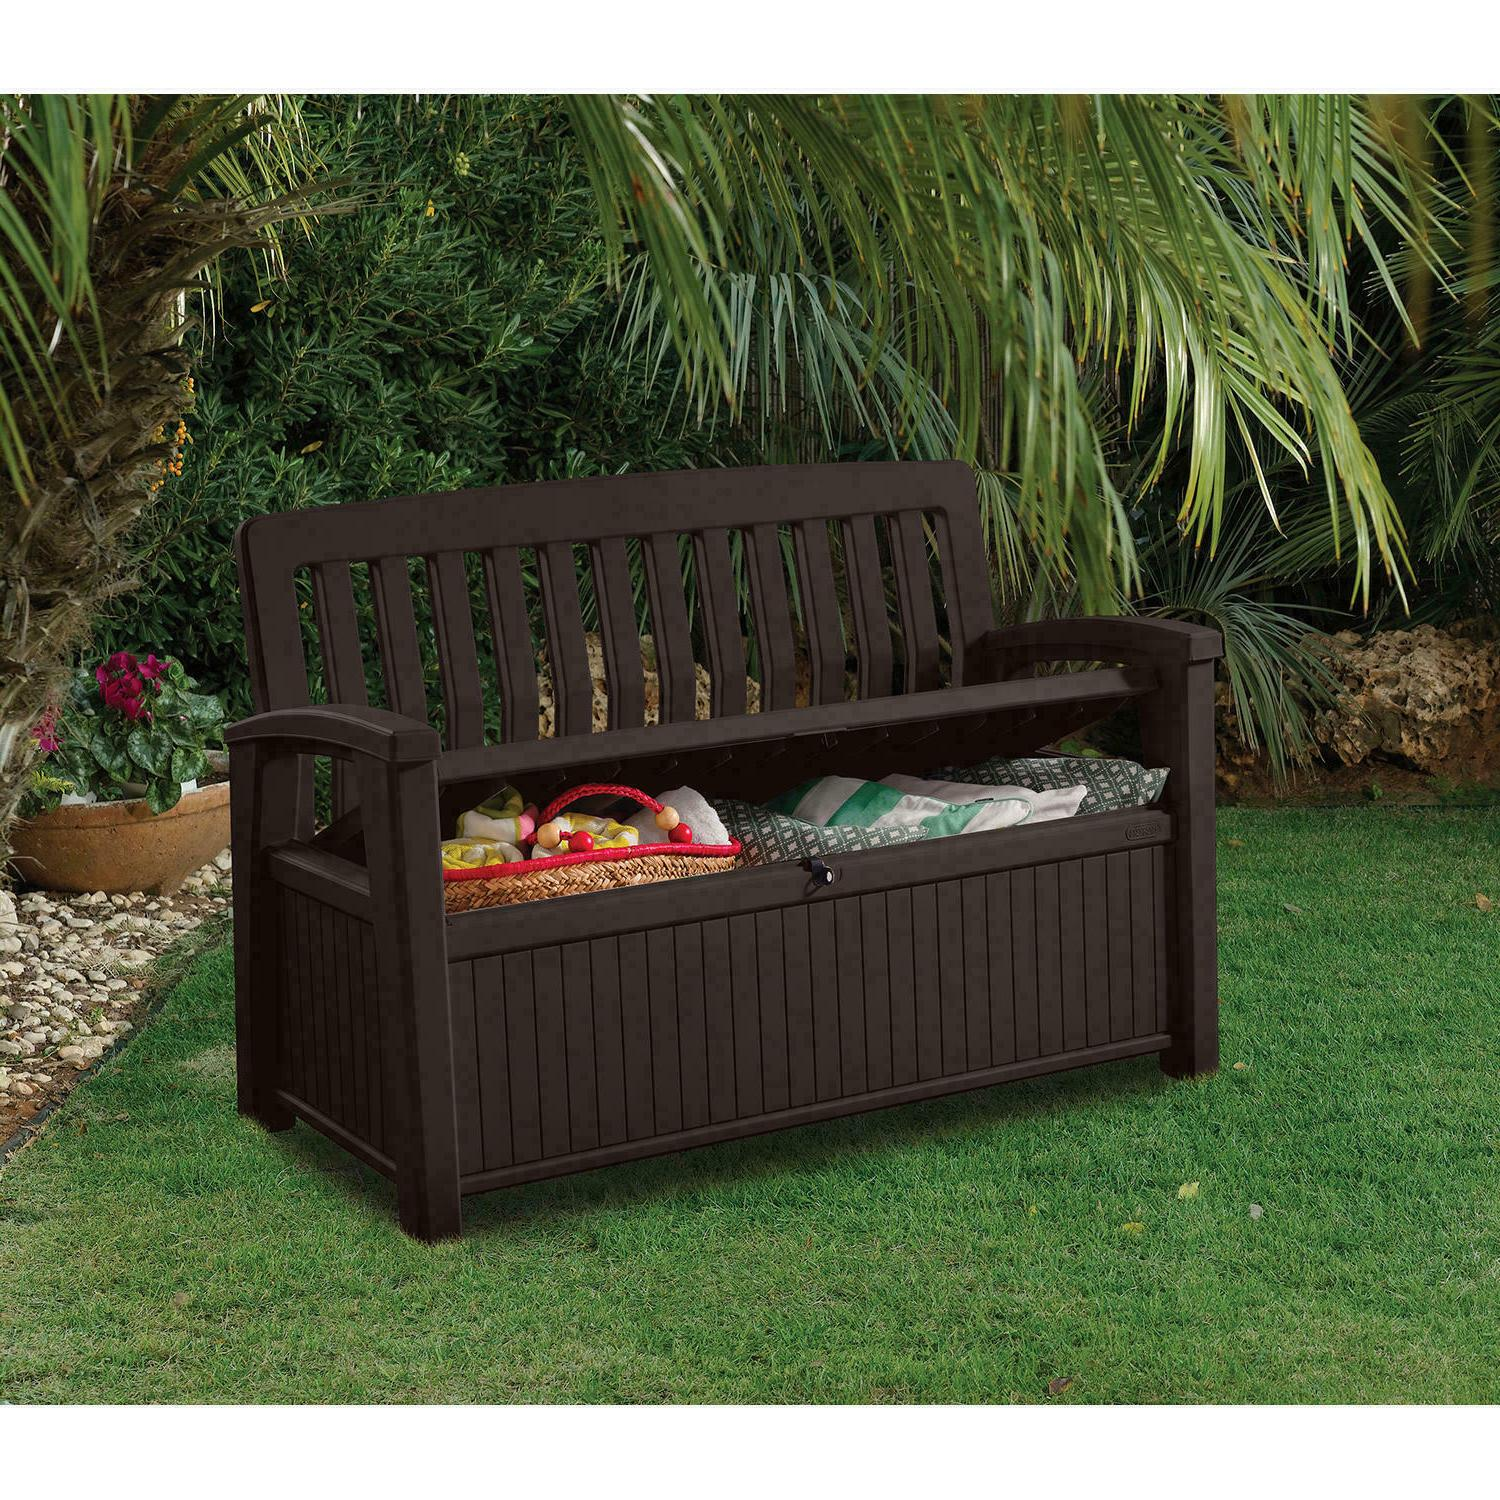 Keter All-Weather Outdoor Patio Bench